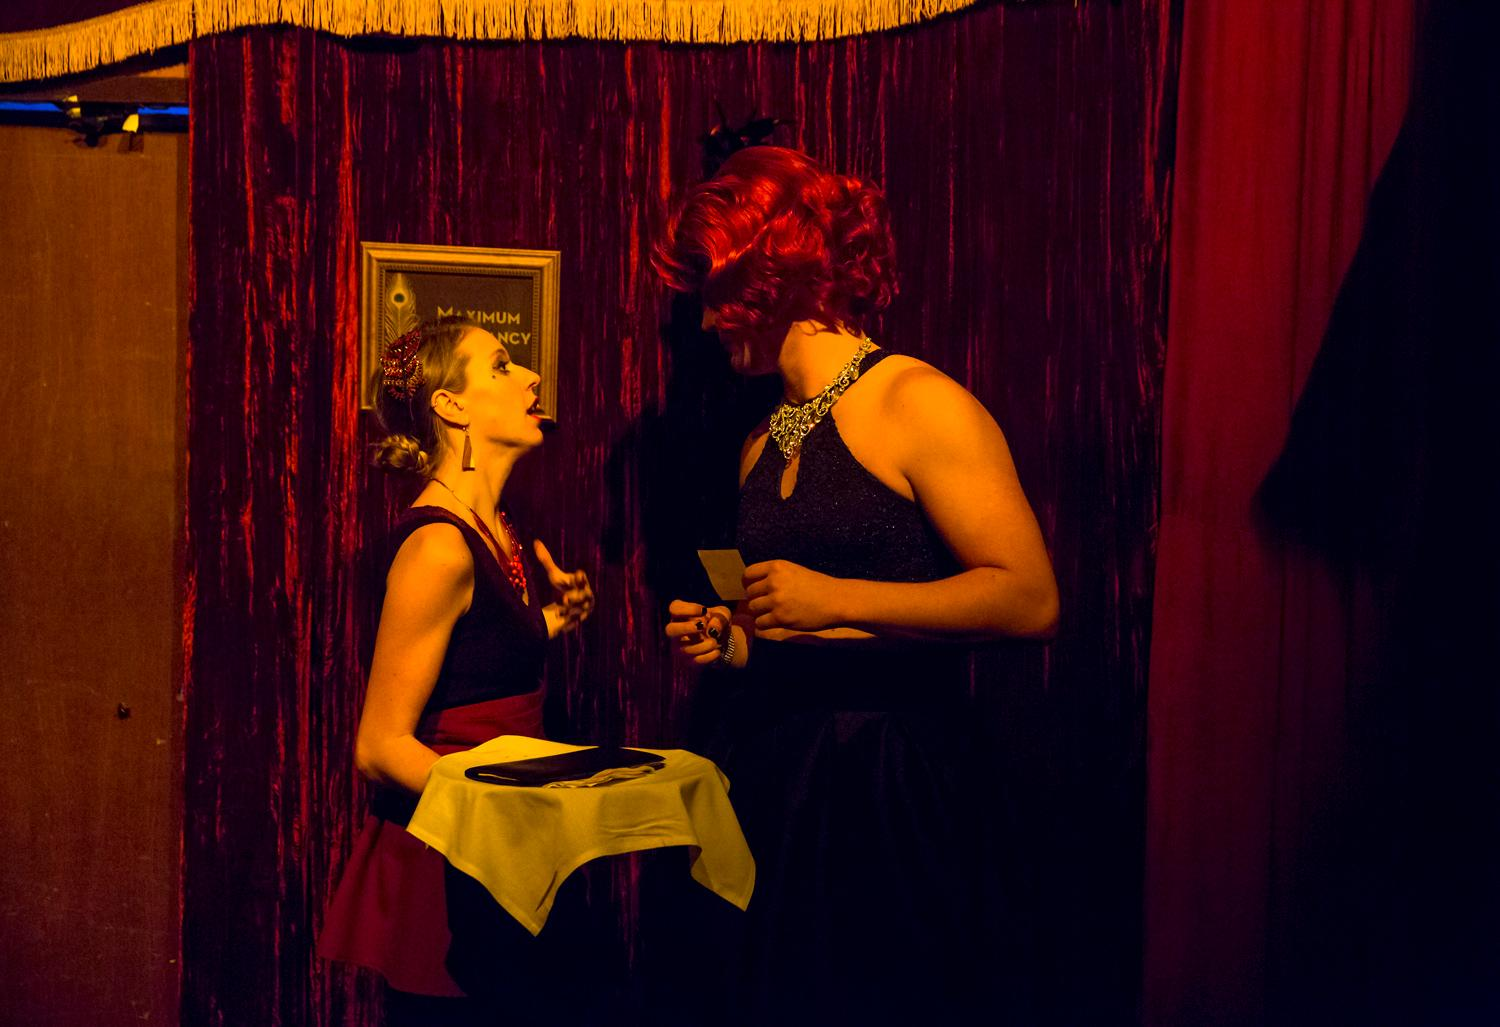 Teatro ZinZanni is a three-hour dinner show full of international cirque, comedy, cabaret, and a multi-course menu designed by James Beard award-winning chef Jason Wilson. (Sy Bean / Seattle Refined)